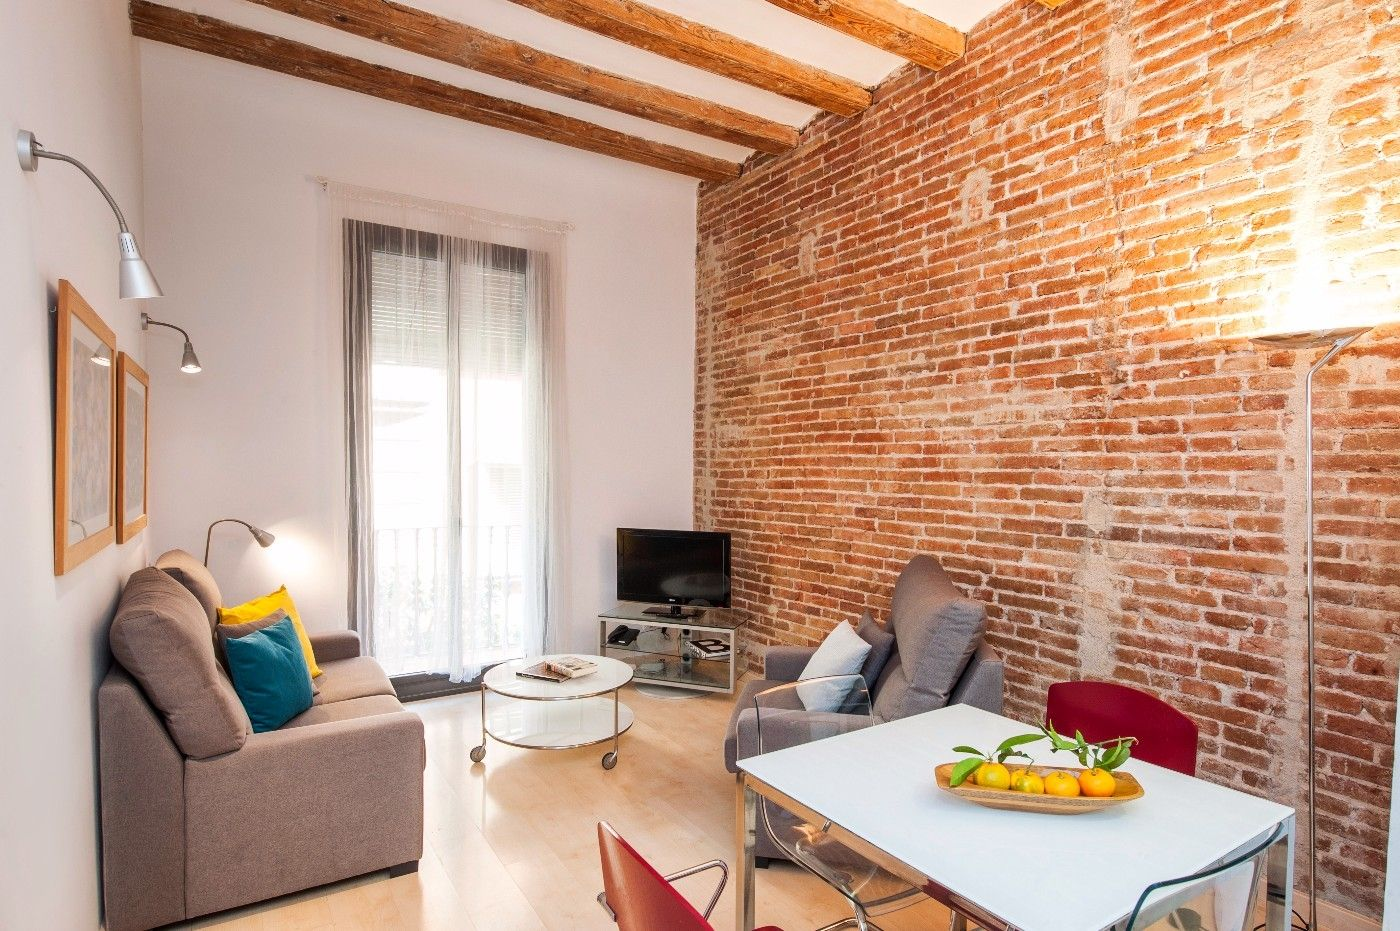 Holiday lettings Apartment in Carrer sant agusti, 16. Gracia en calle semi peatonal